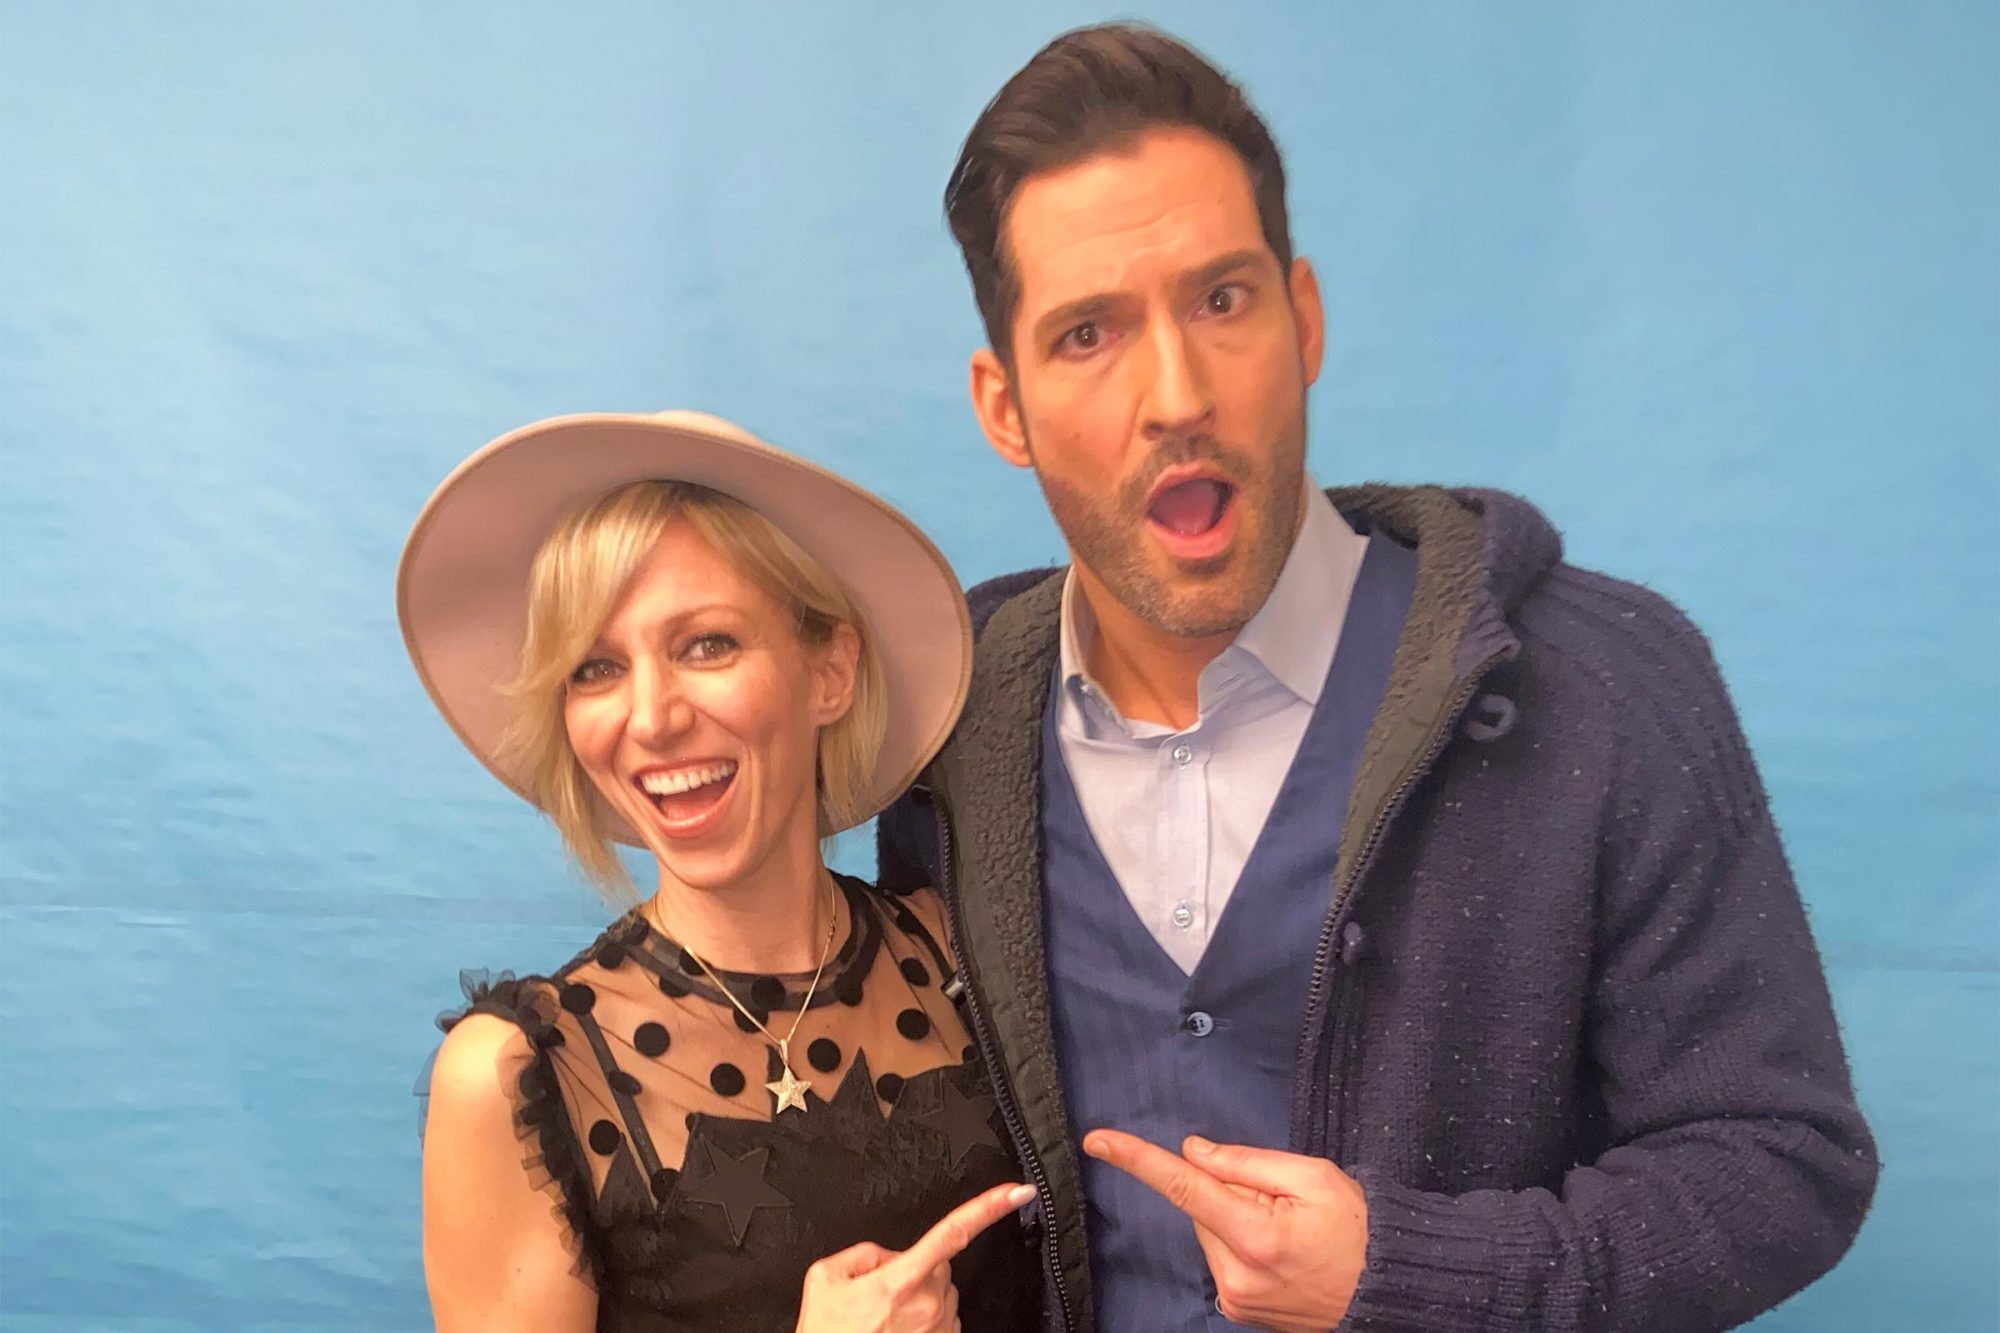 Debbie Gibson and Tom Ellis